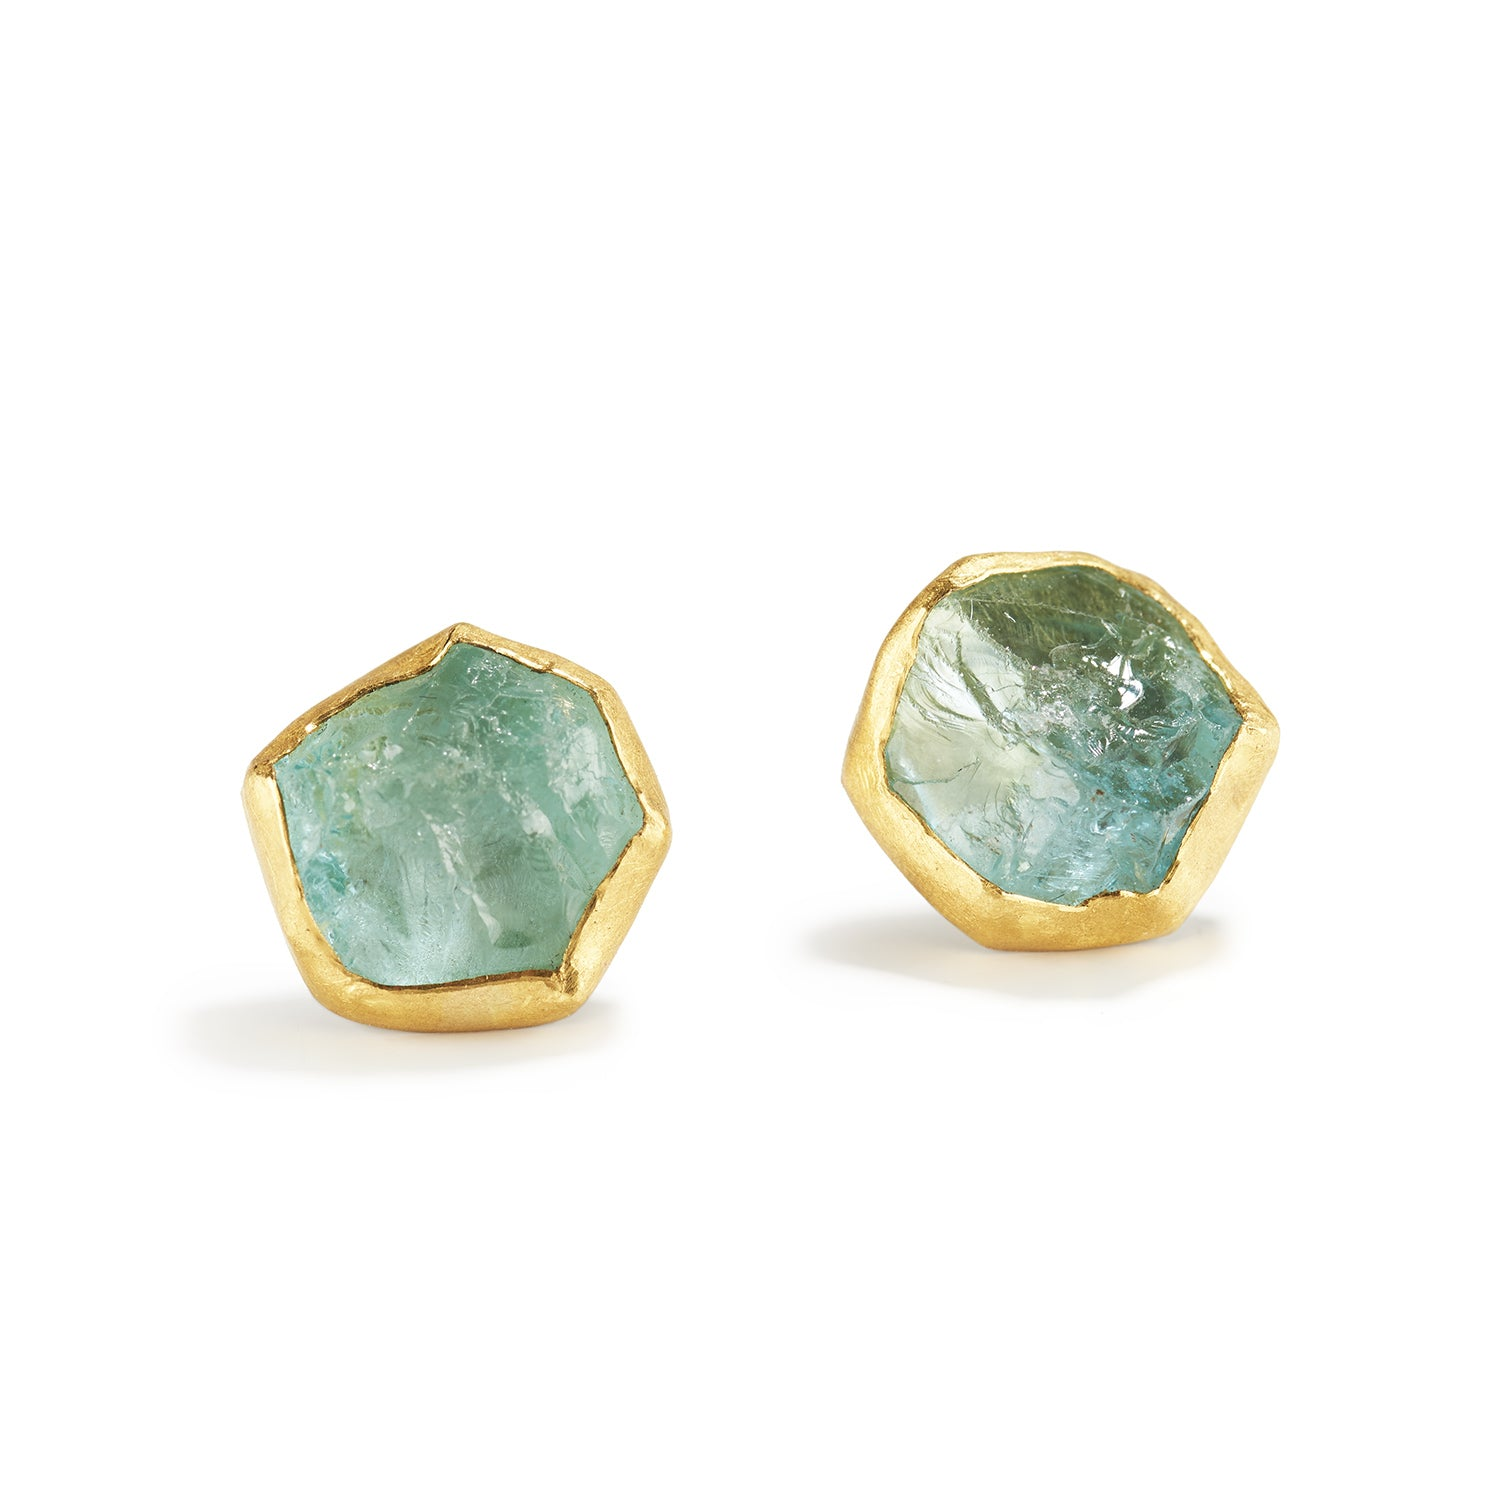 Aquamarine Crystal Ear Studs